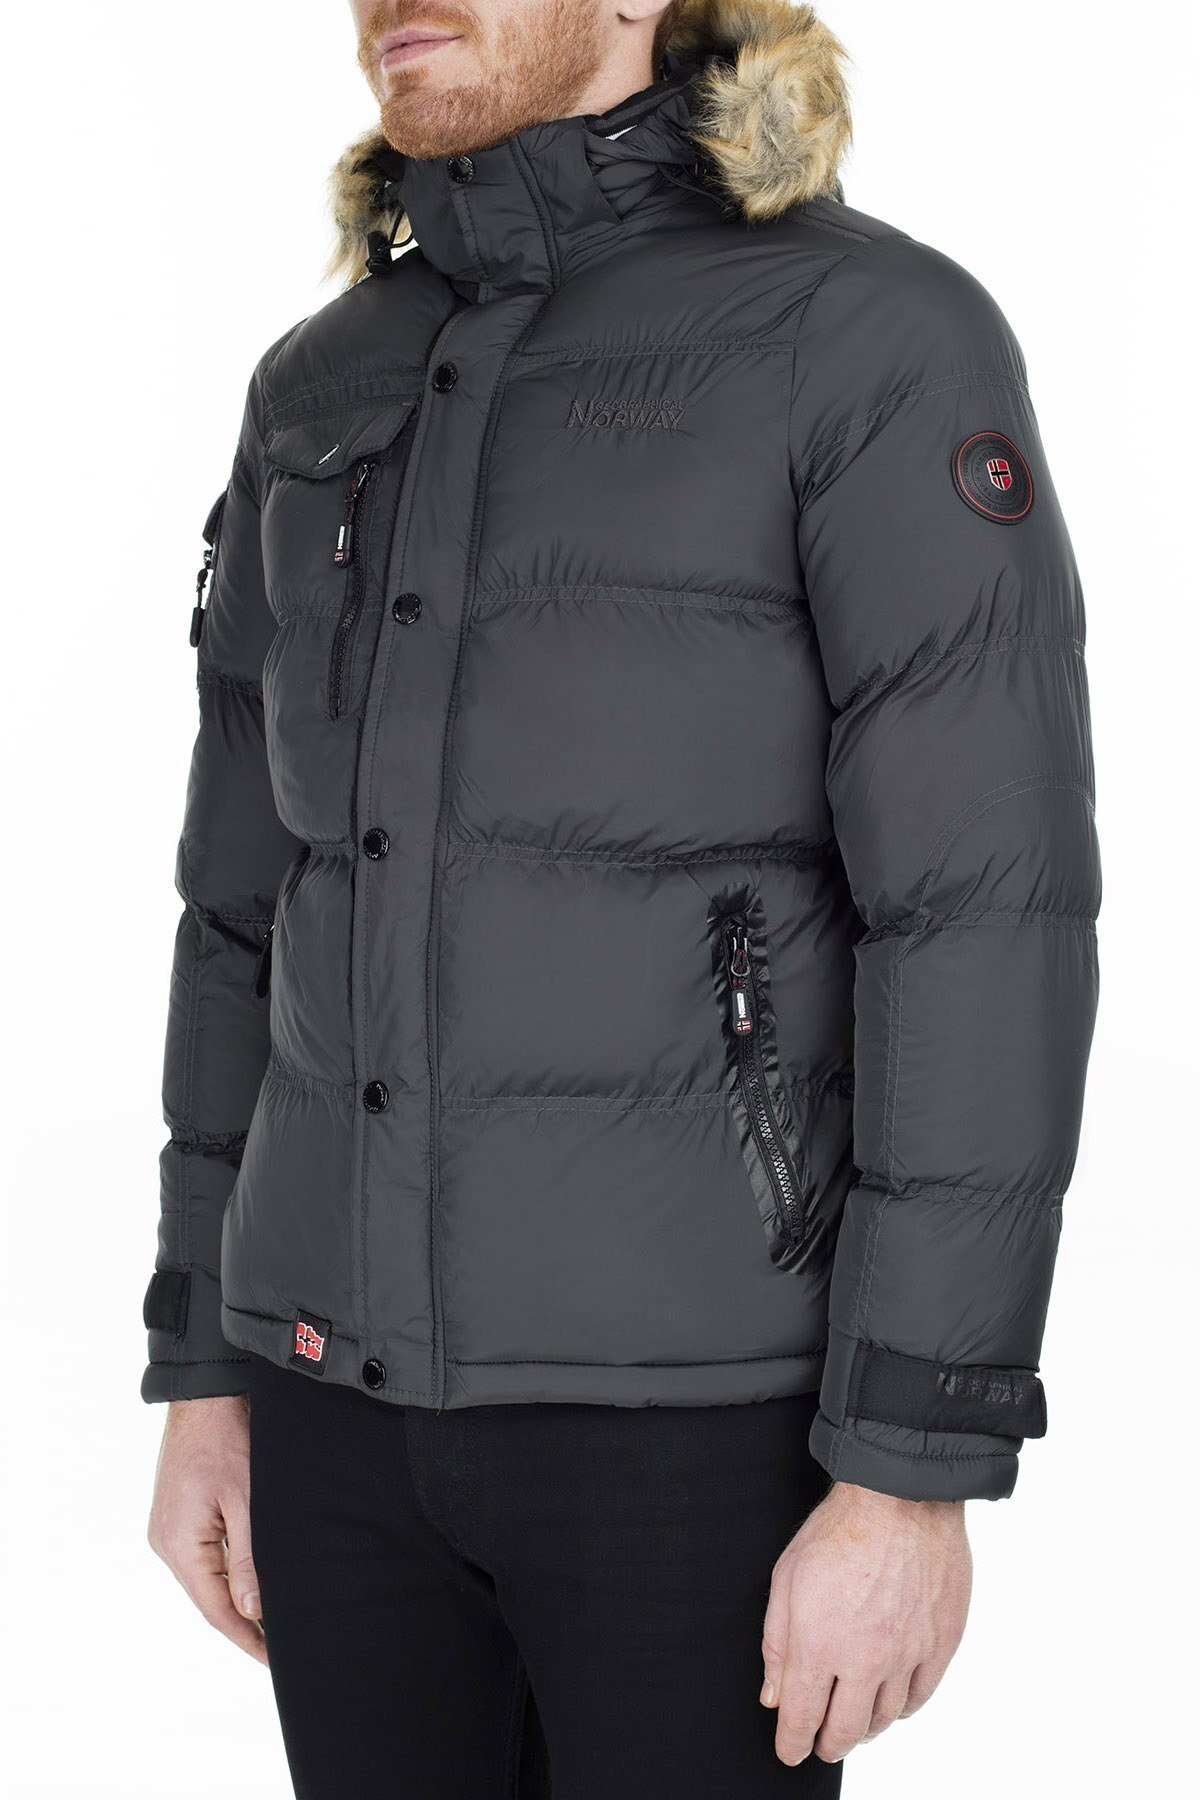 Norway Geographical Outdoor Erkek Mont CLEMENT ANTRASİT